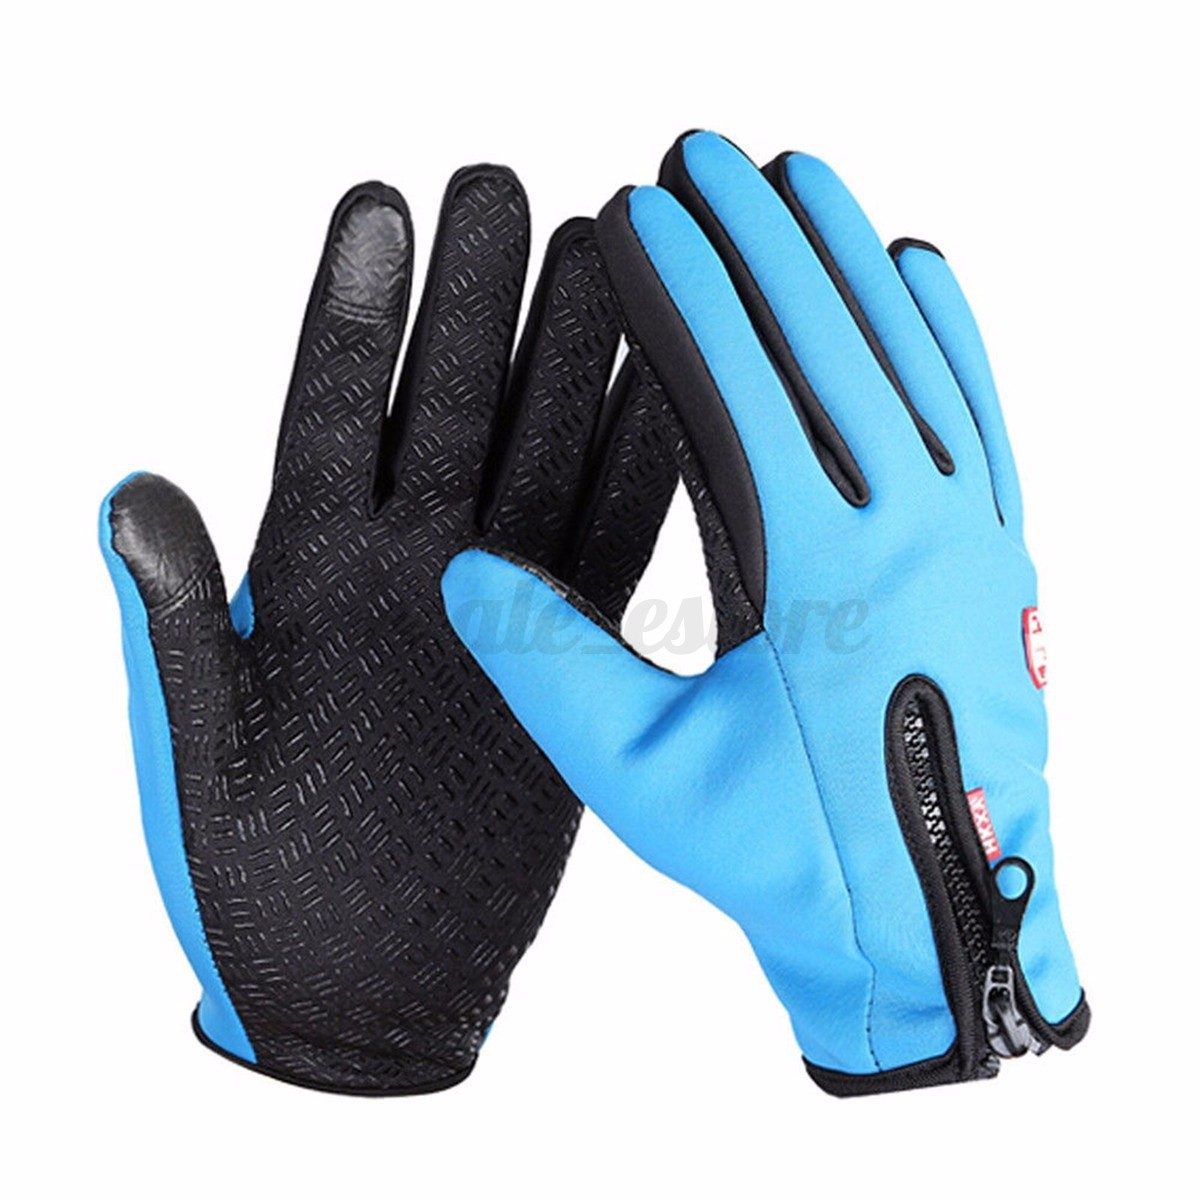 Winter Gloves for Any Activity. Make sure you have the right level of insulation and coverage, whether you're skiing at high altitude or simply walking to your car in cold temperatures.